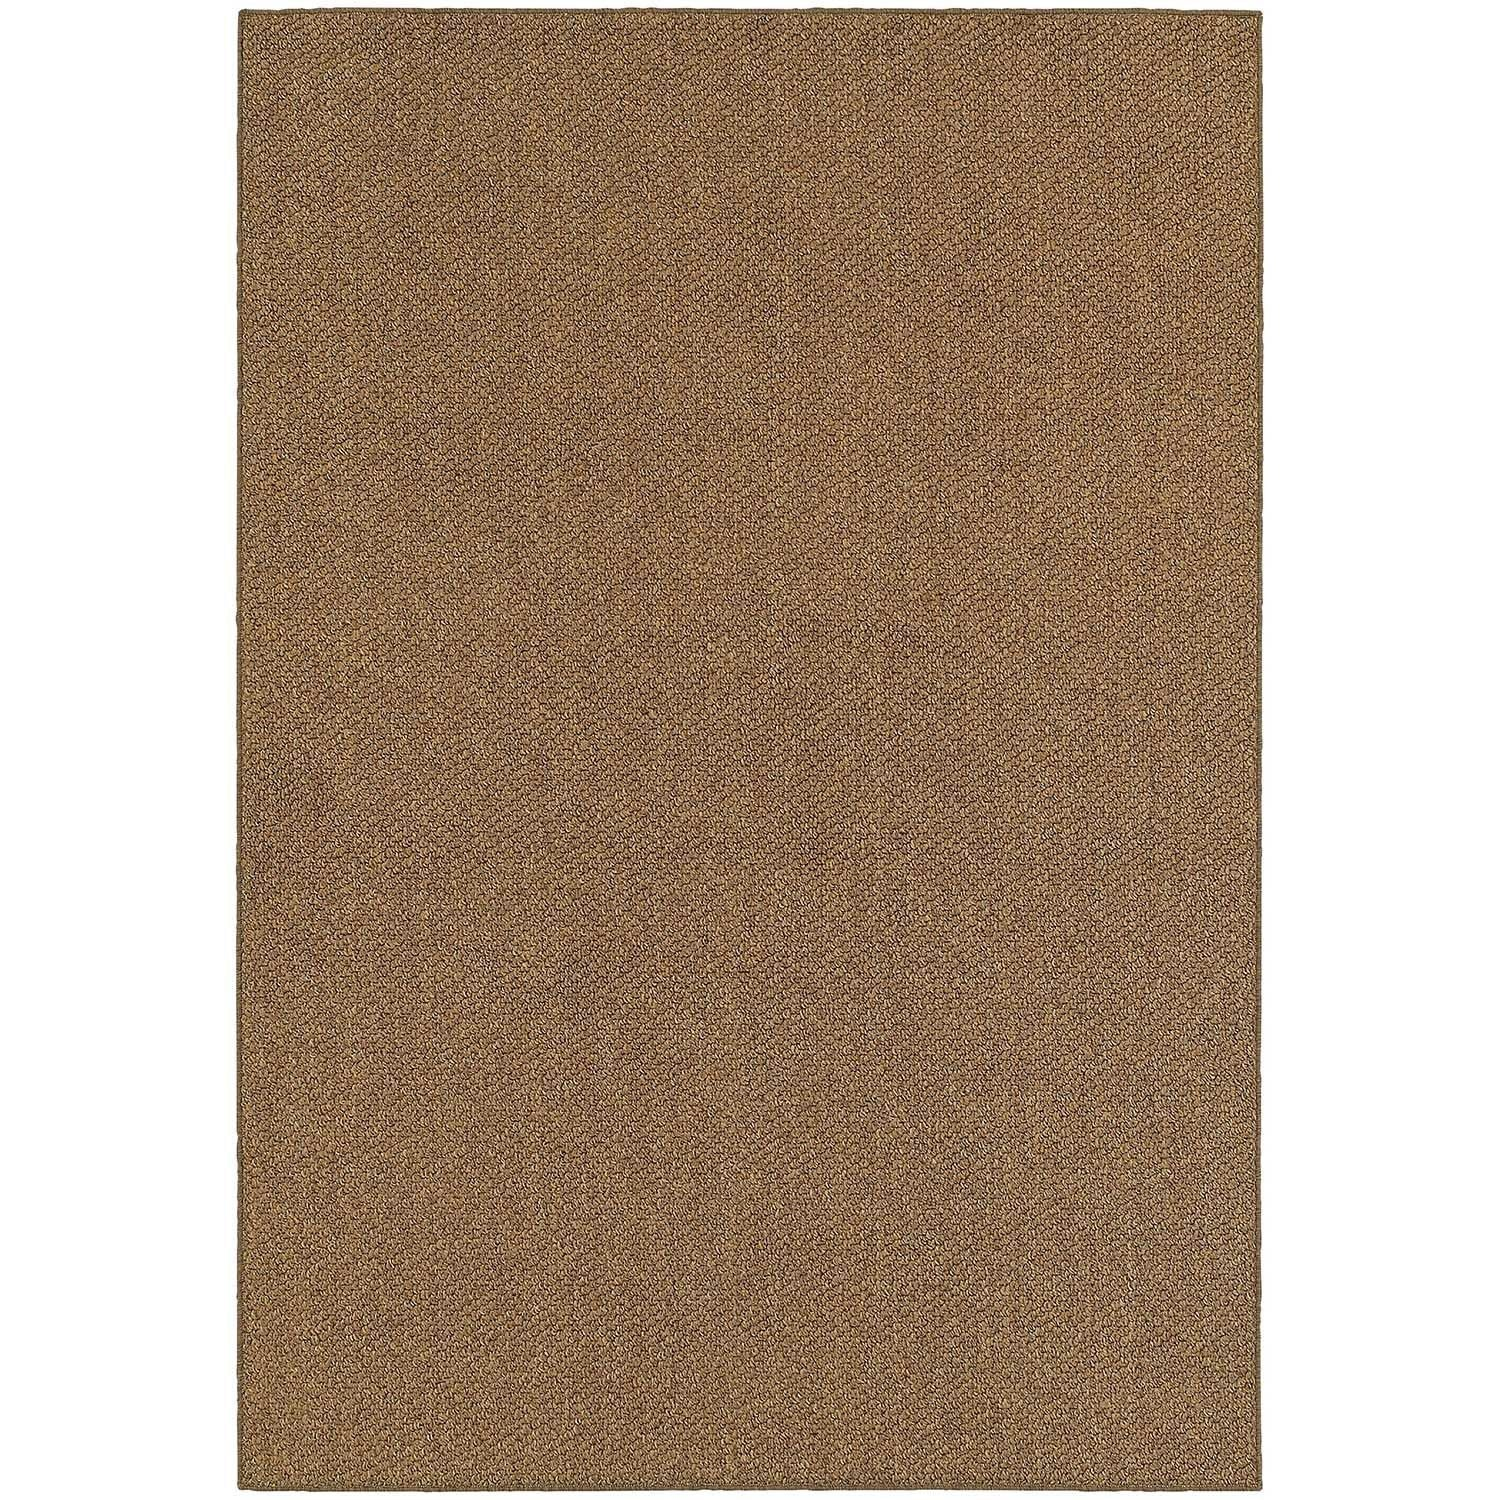 Shop Stylehaven Solid Brown Tan Indoor Outdoor Area Rug 9 10x12 10